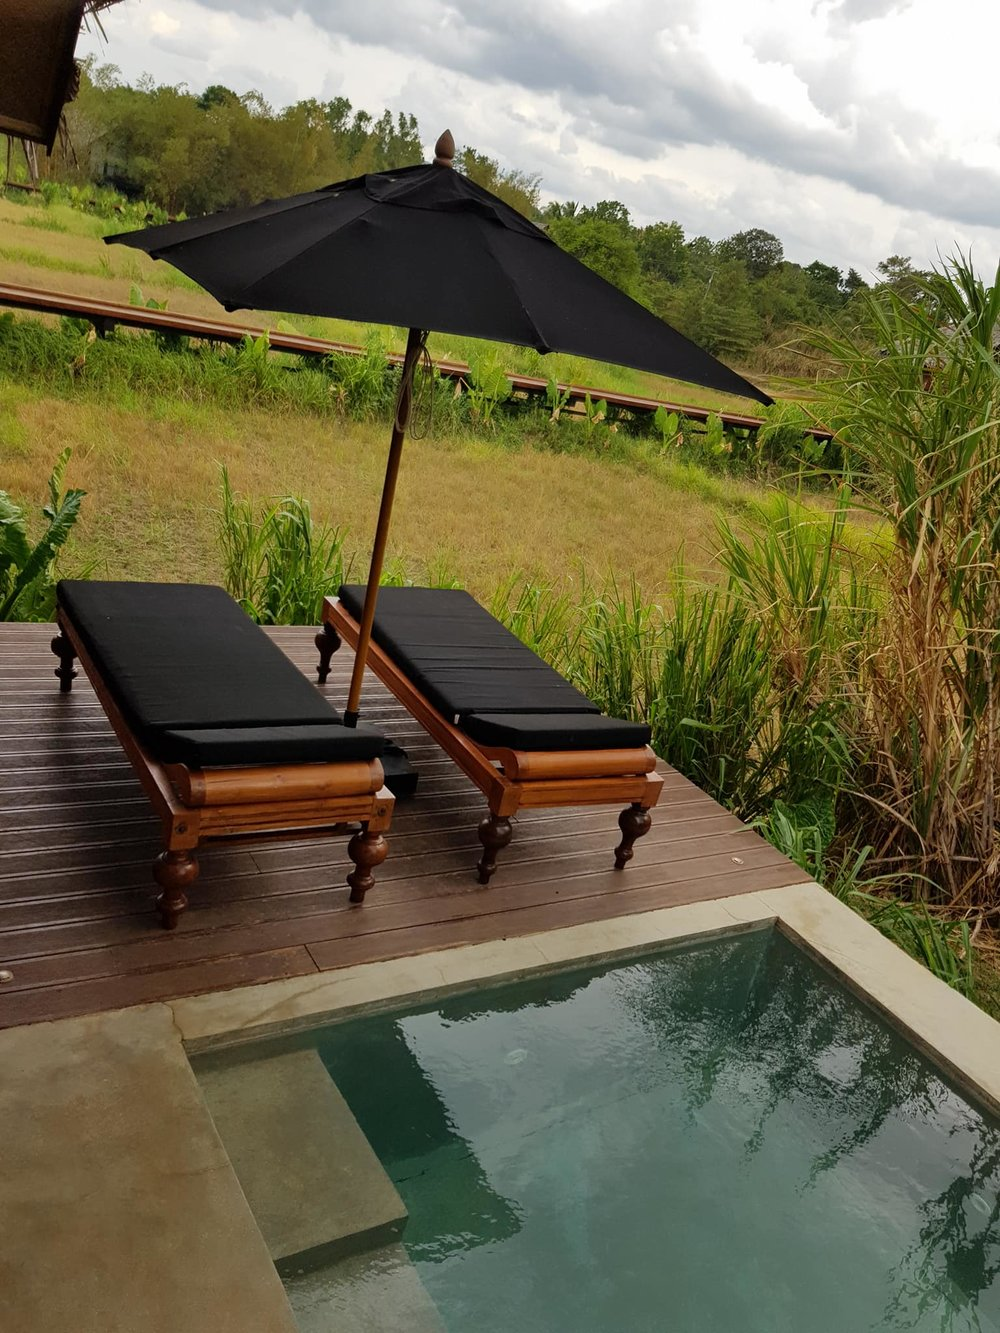 invite-to-paradise-sri-lanka-maldives-holiday-honeymoon-specialists-customer-guest-feedback-zane-lisa-butcher-jetwing-vil-uyana-hotel-sigiriya-cultural-triangle-paddy-dwelling-pool.jpg